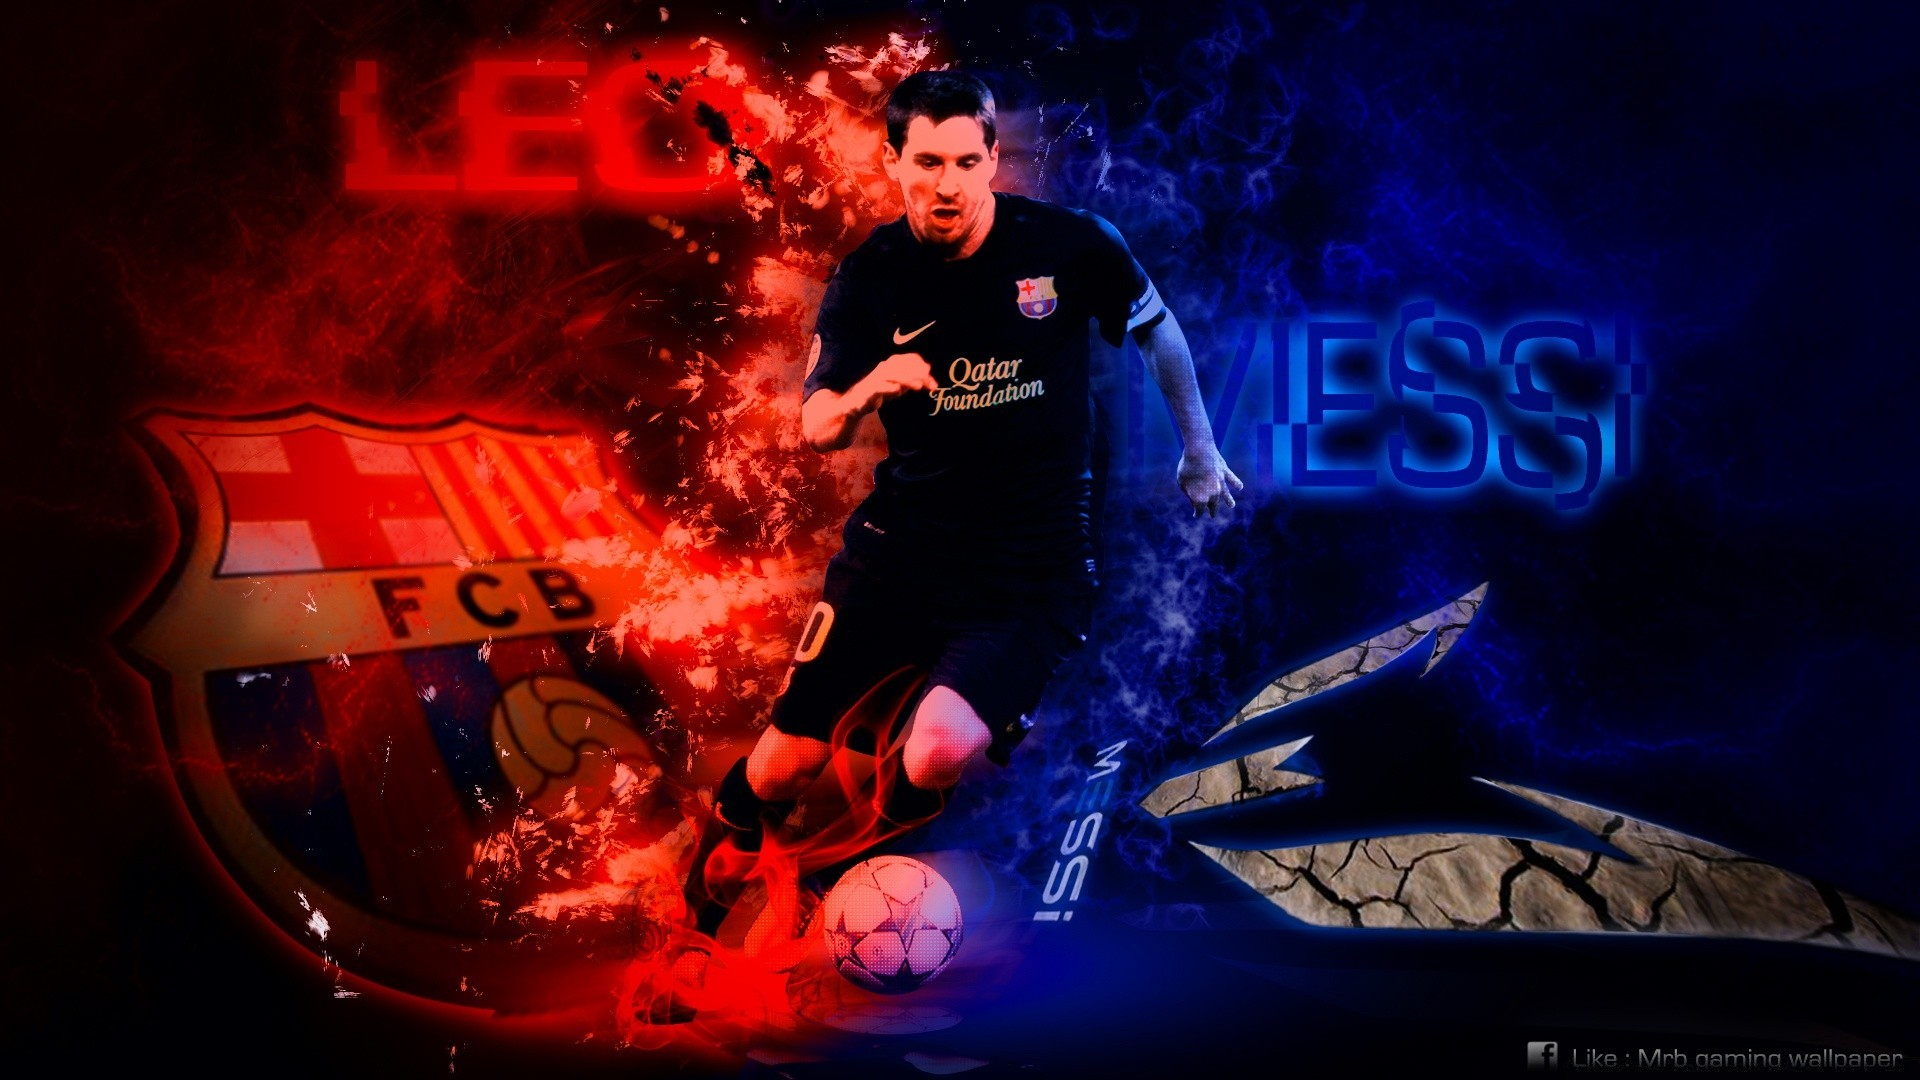 Lionel Messi Hd Wallpaper By Mrb Gaming Desktop Wallpapers For Free